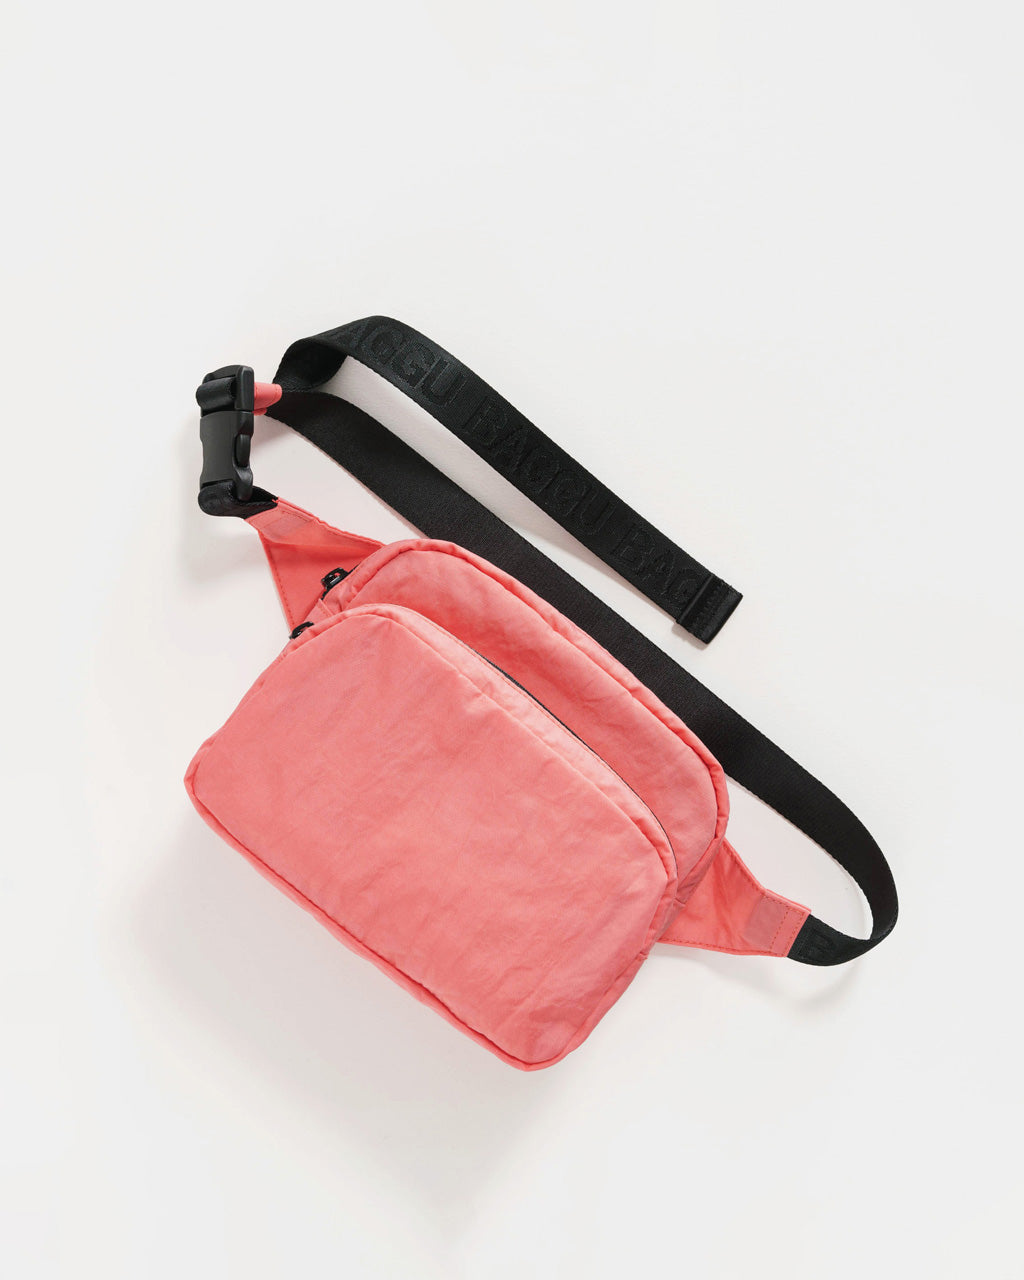 nylon fanny pack in watermelon pink with black strap